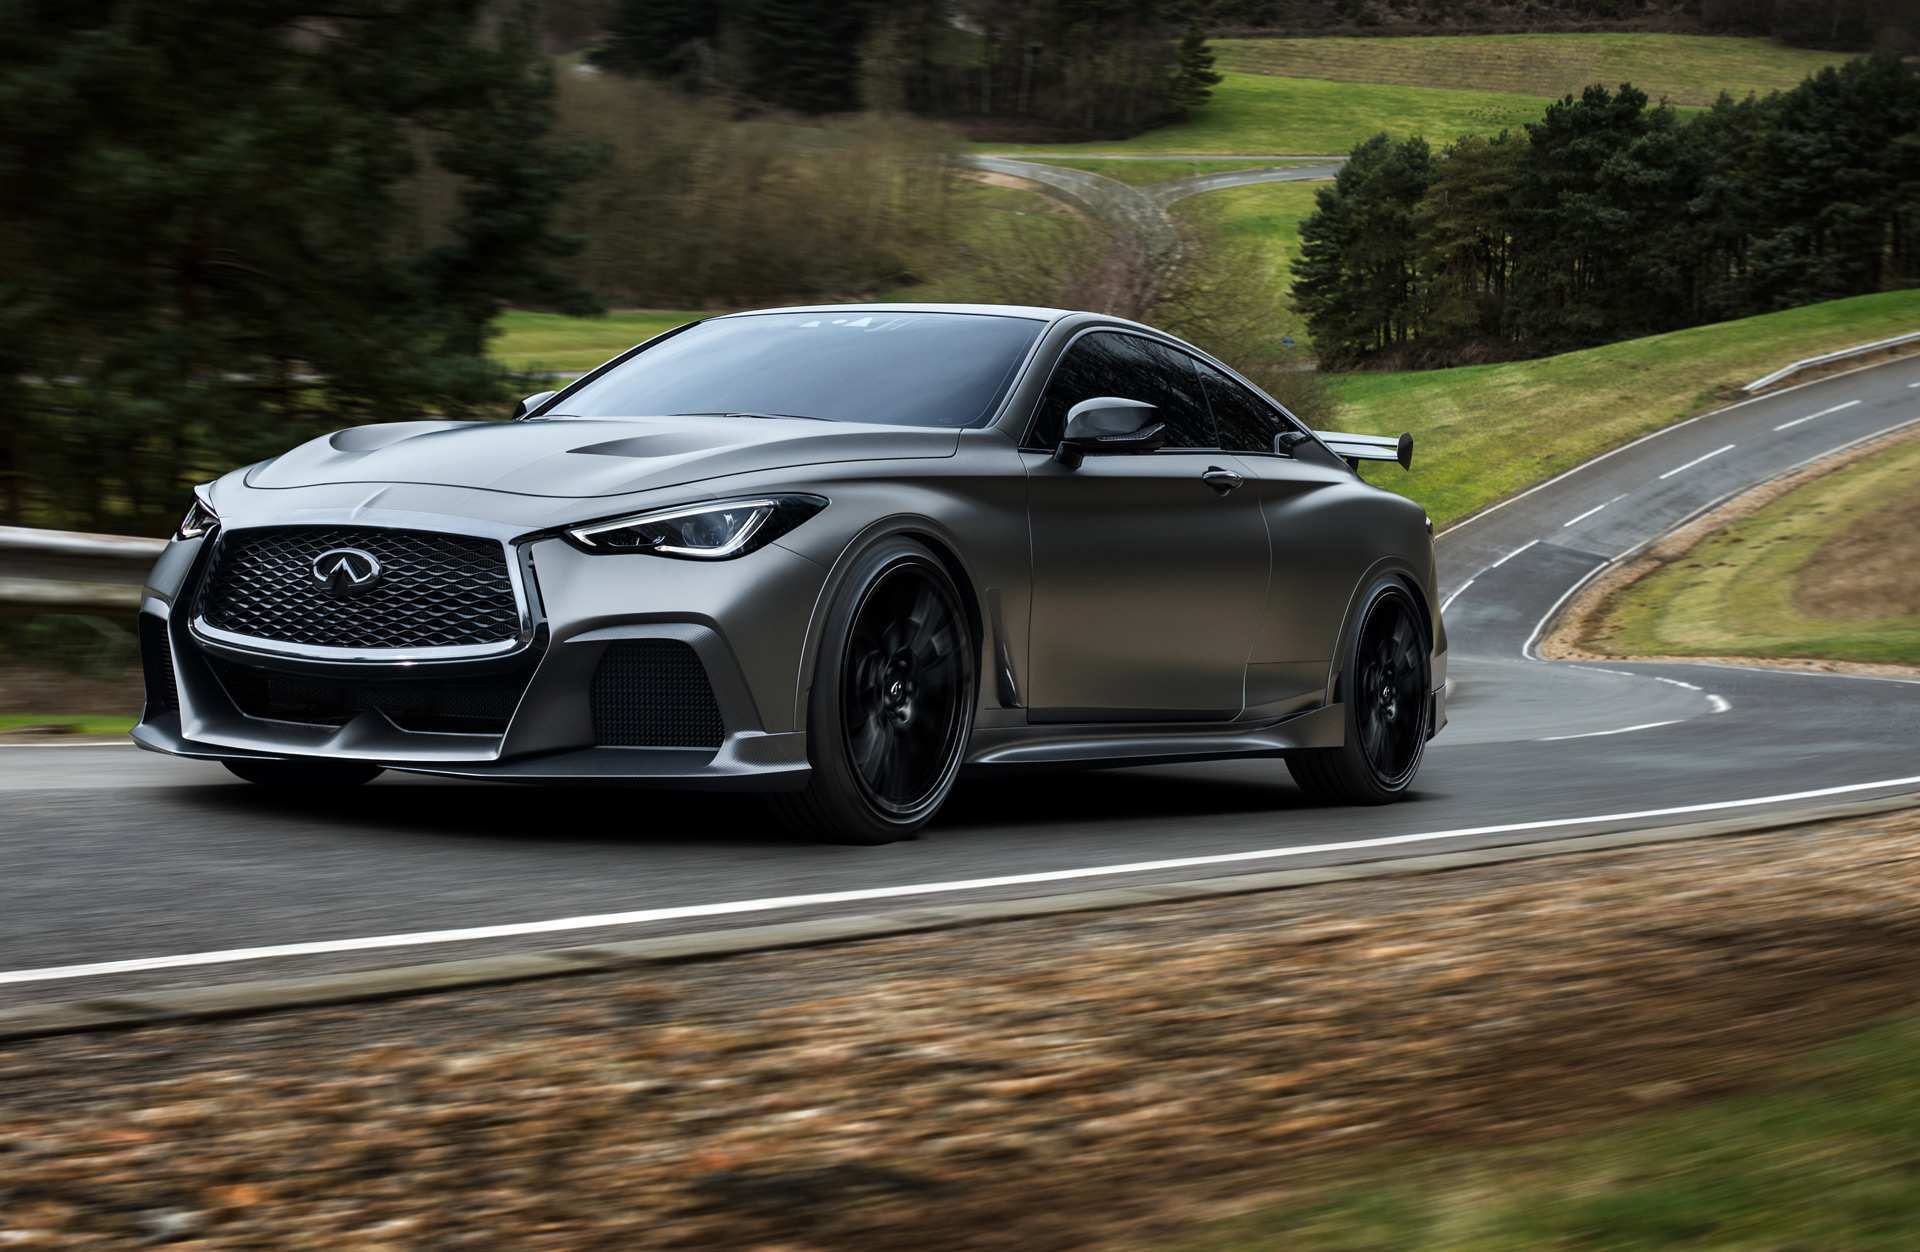 49 Best Review New Infiniti 2020 Engine with New Infiniti 2020